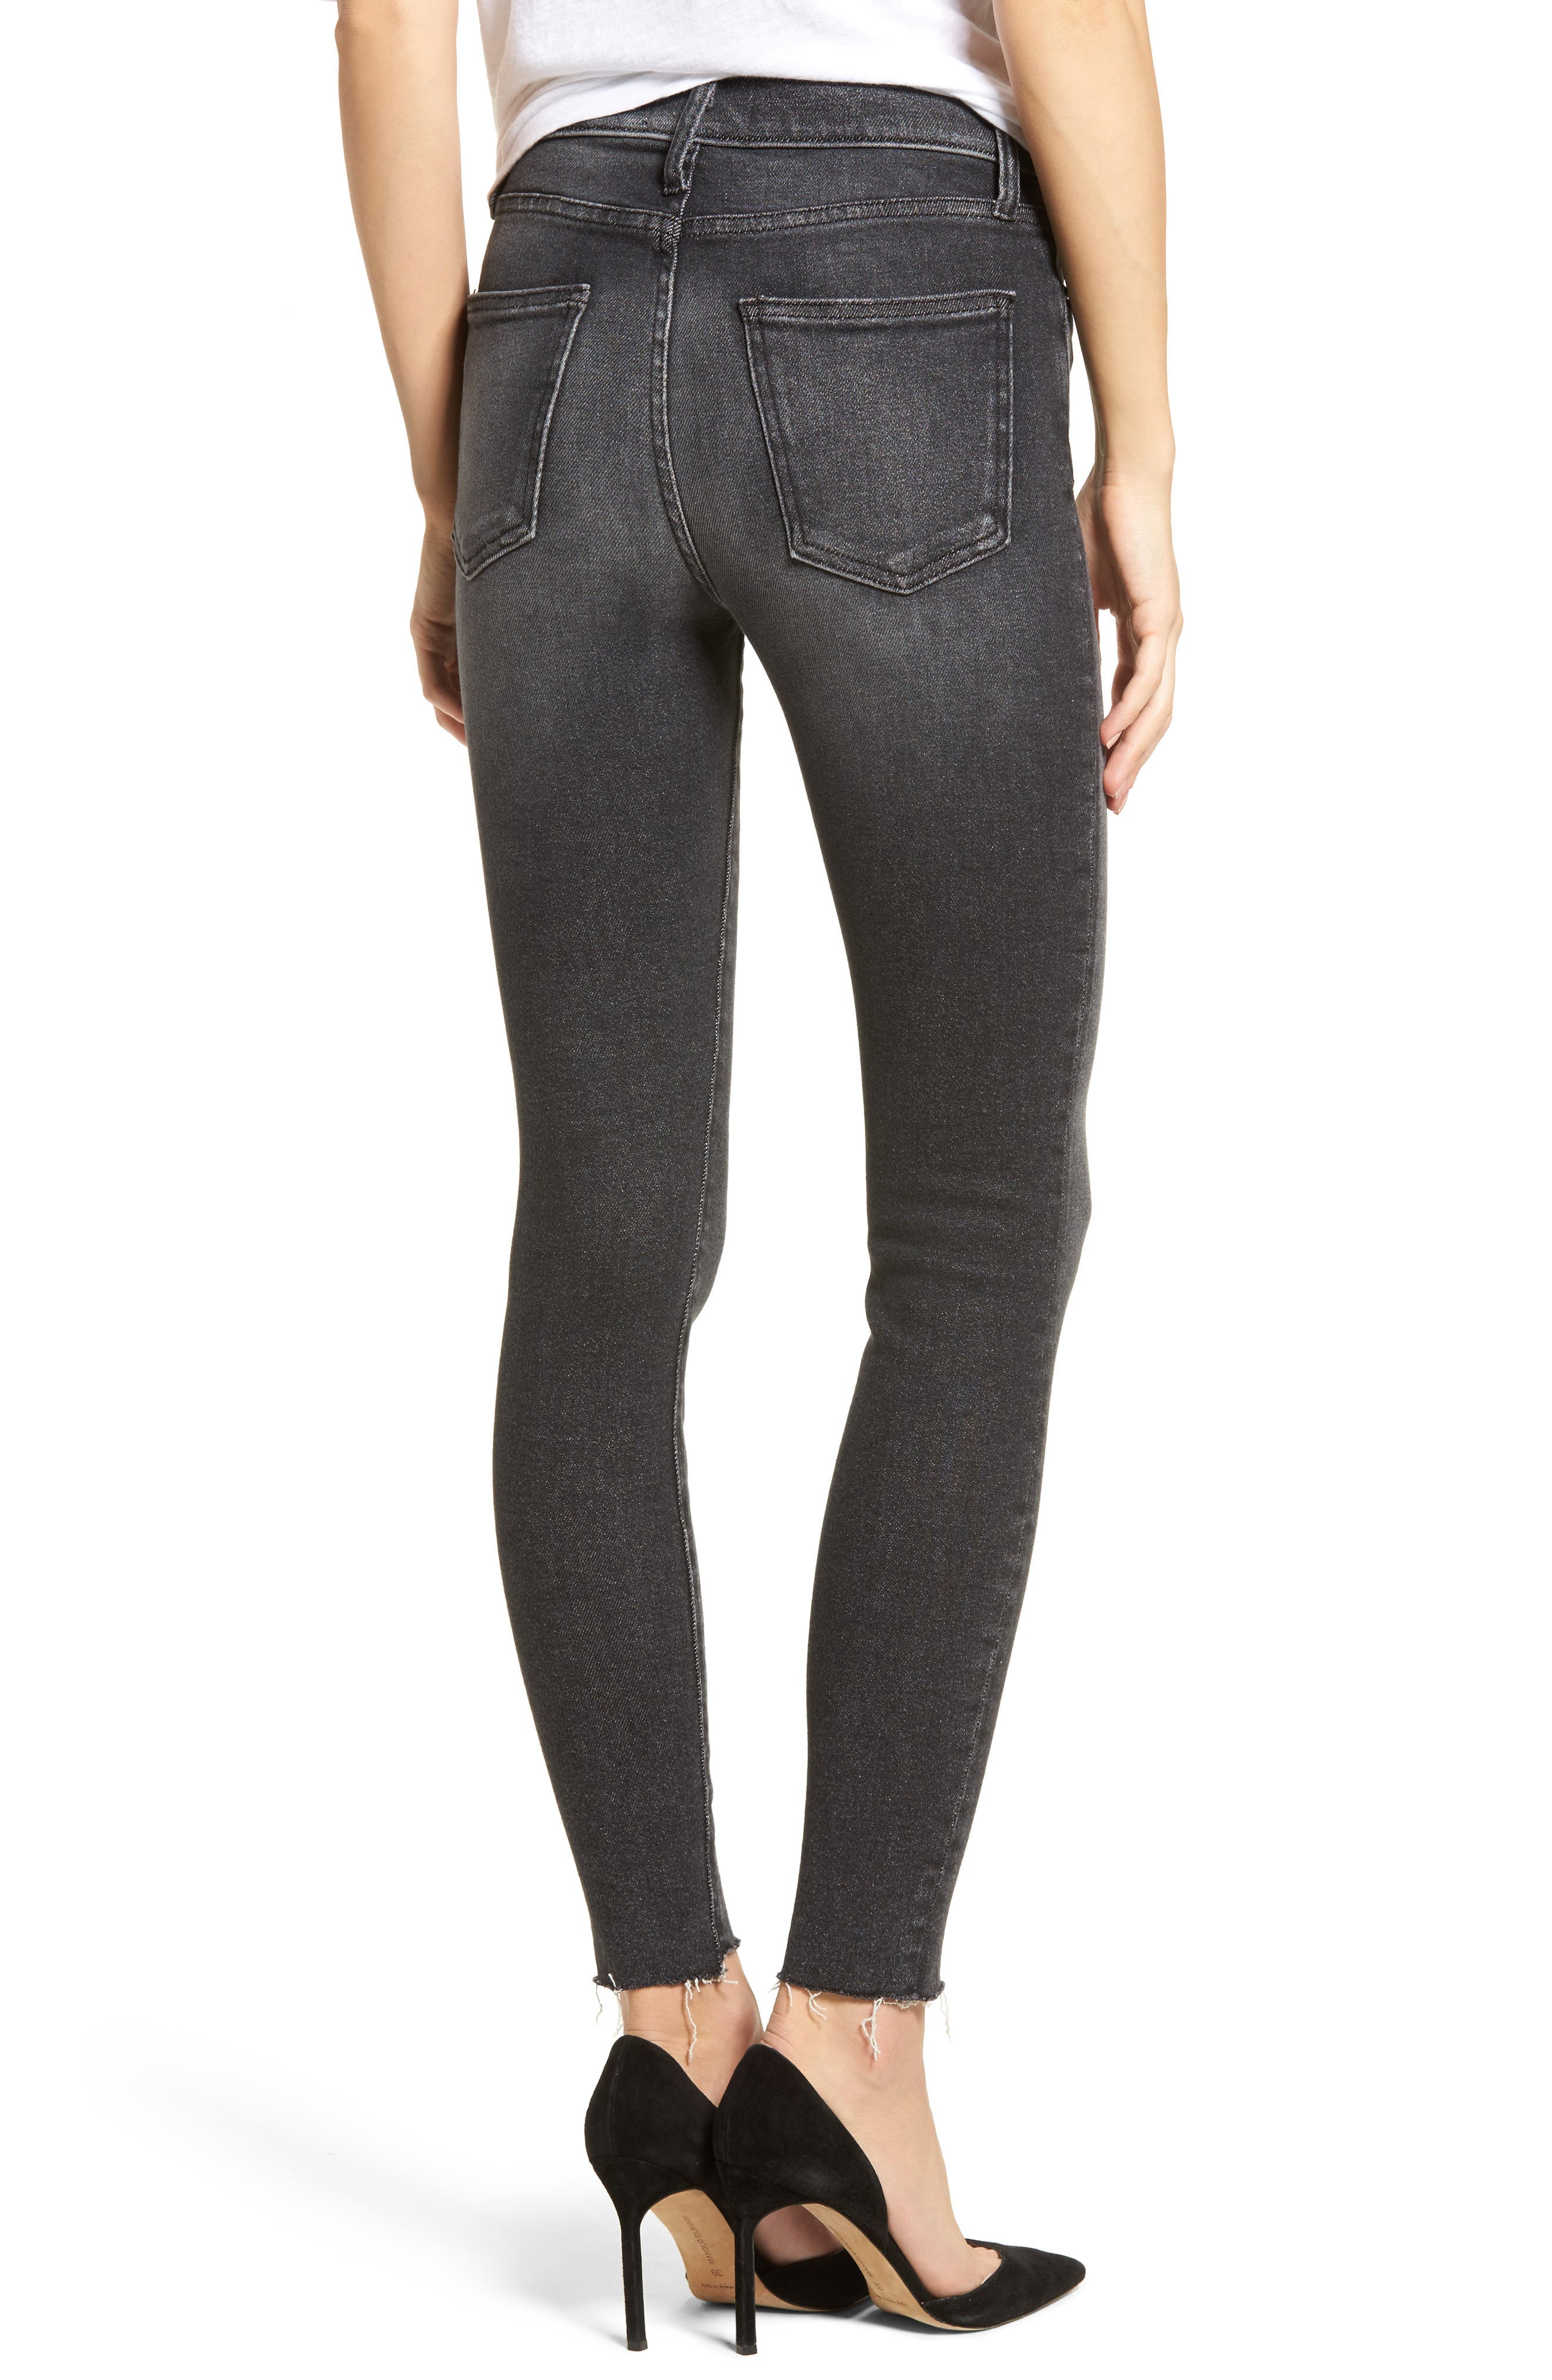 The Ultra High Waist Ankle Skinny Jeans,                             Alternate thumbnail 2, color,                             007